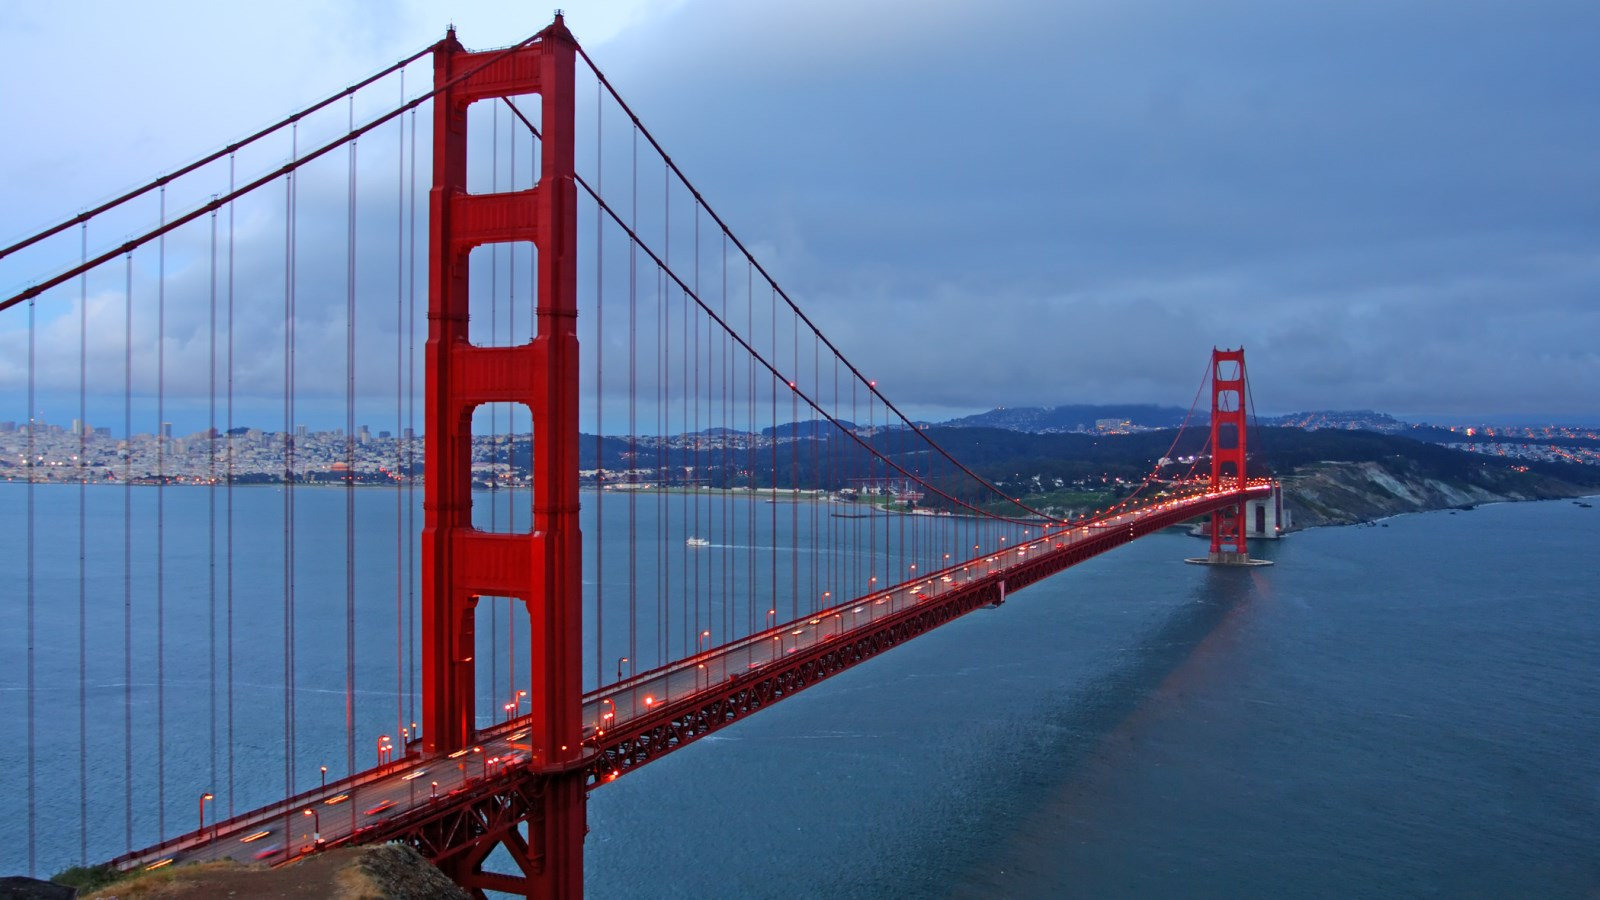 Things to do in San Francisco Bay Area - Golden Gate Bridge